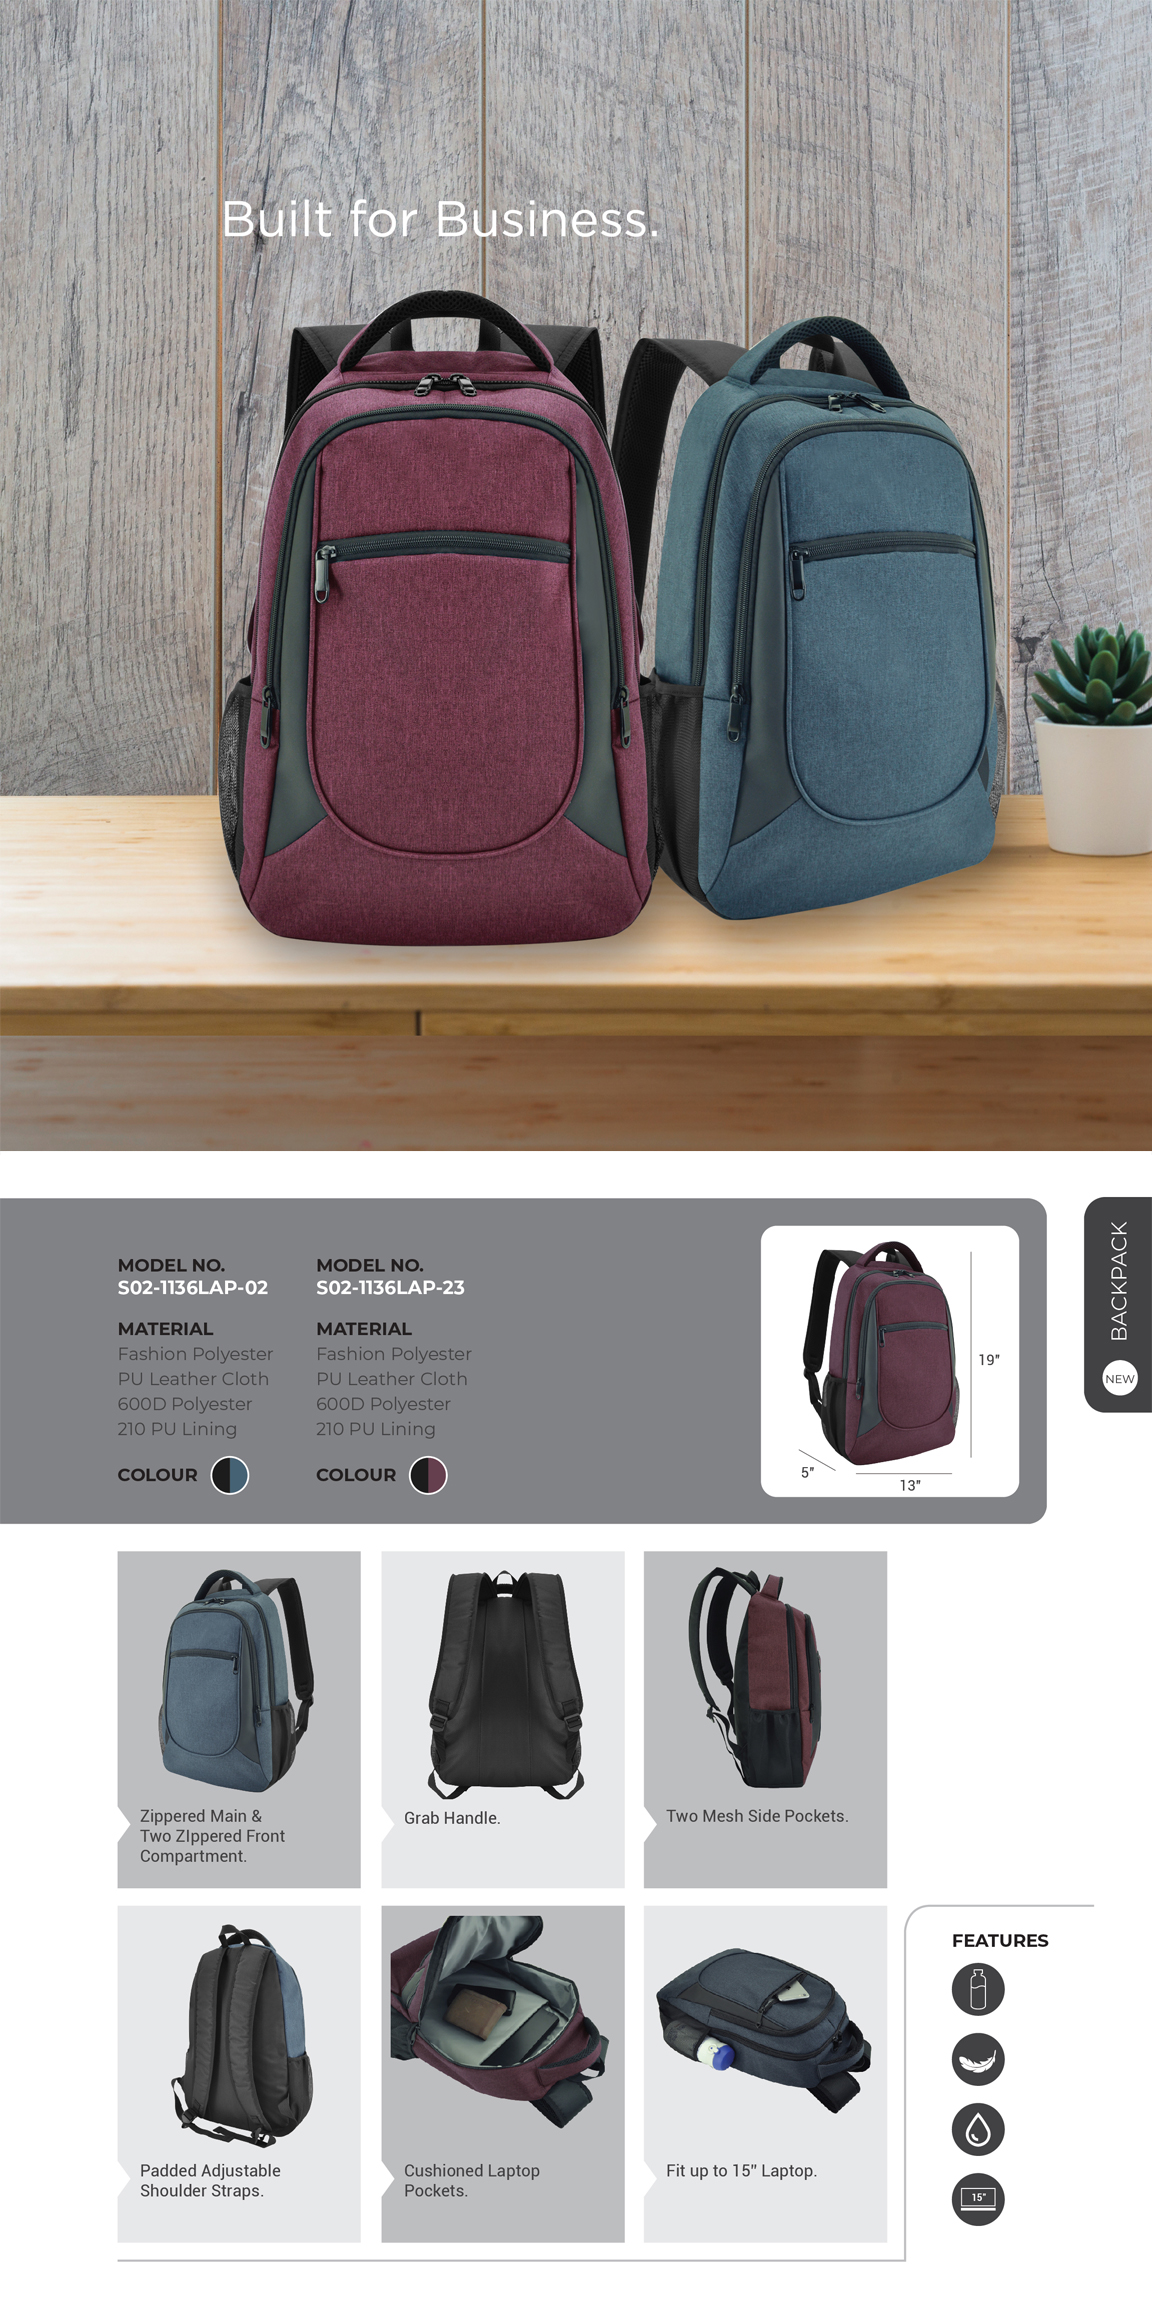 Backpack S02-1136LAP-02